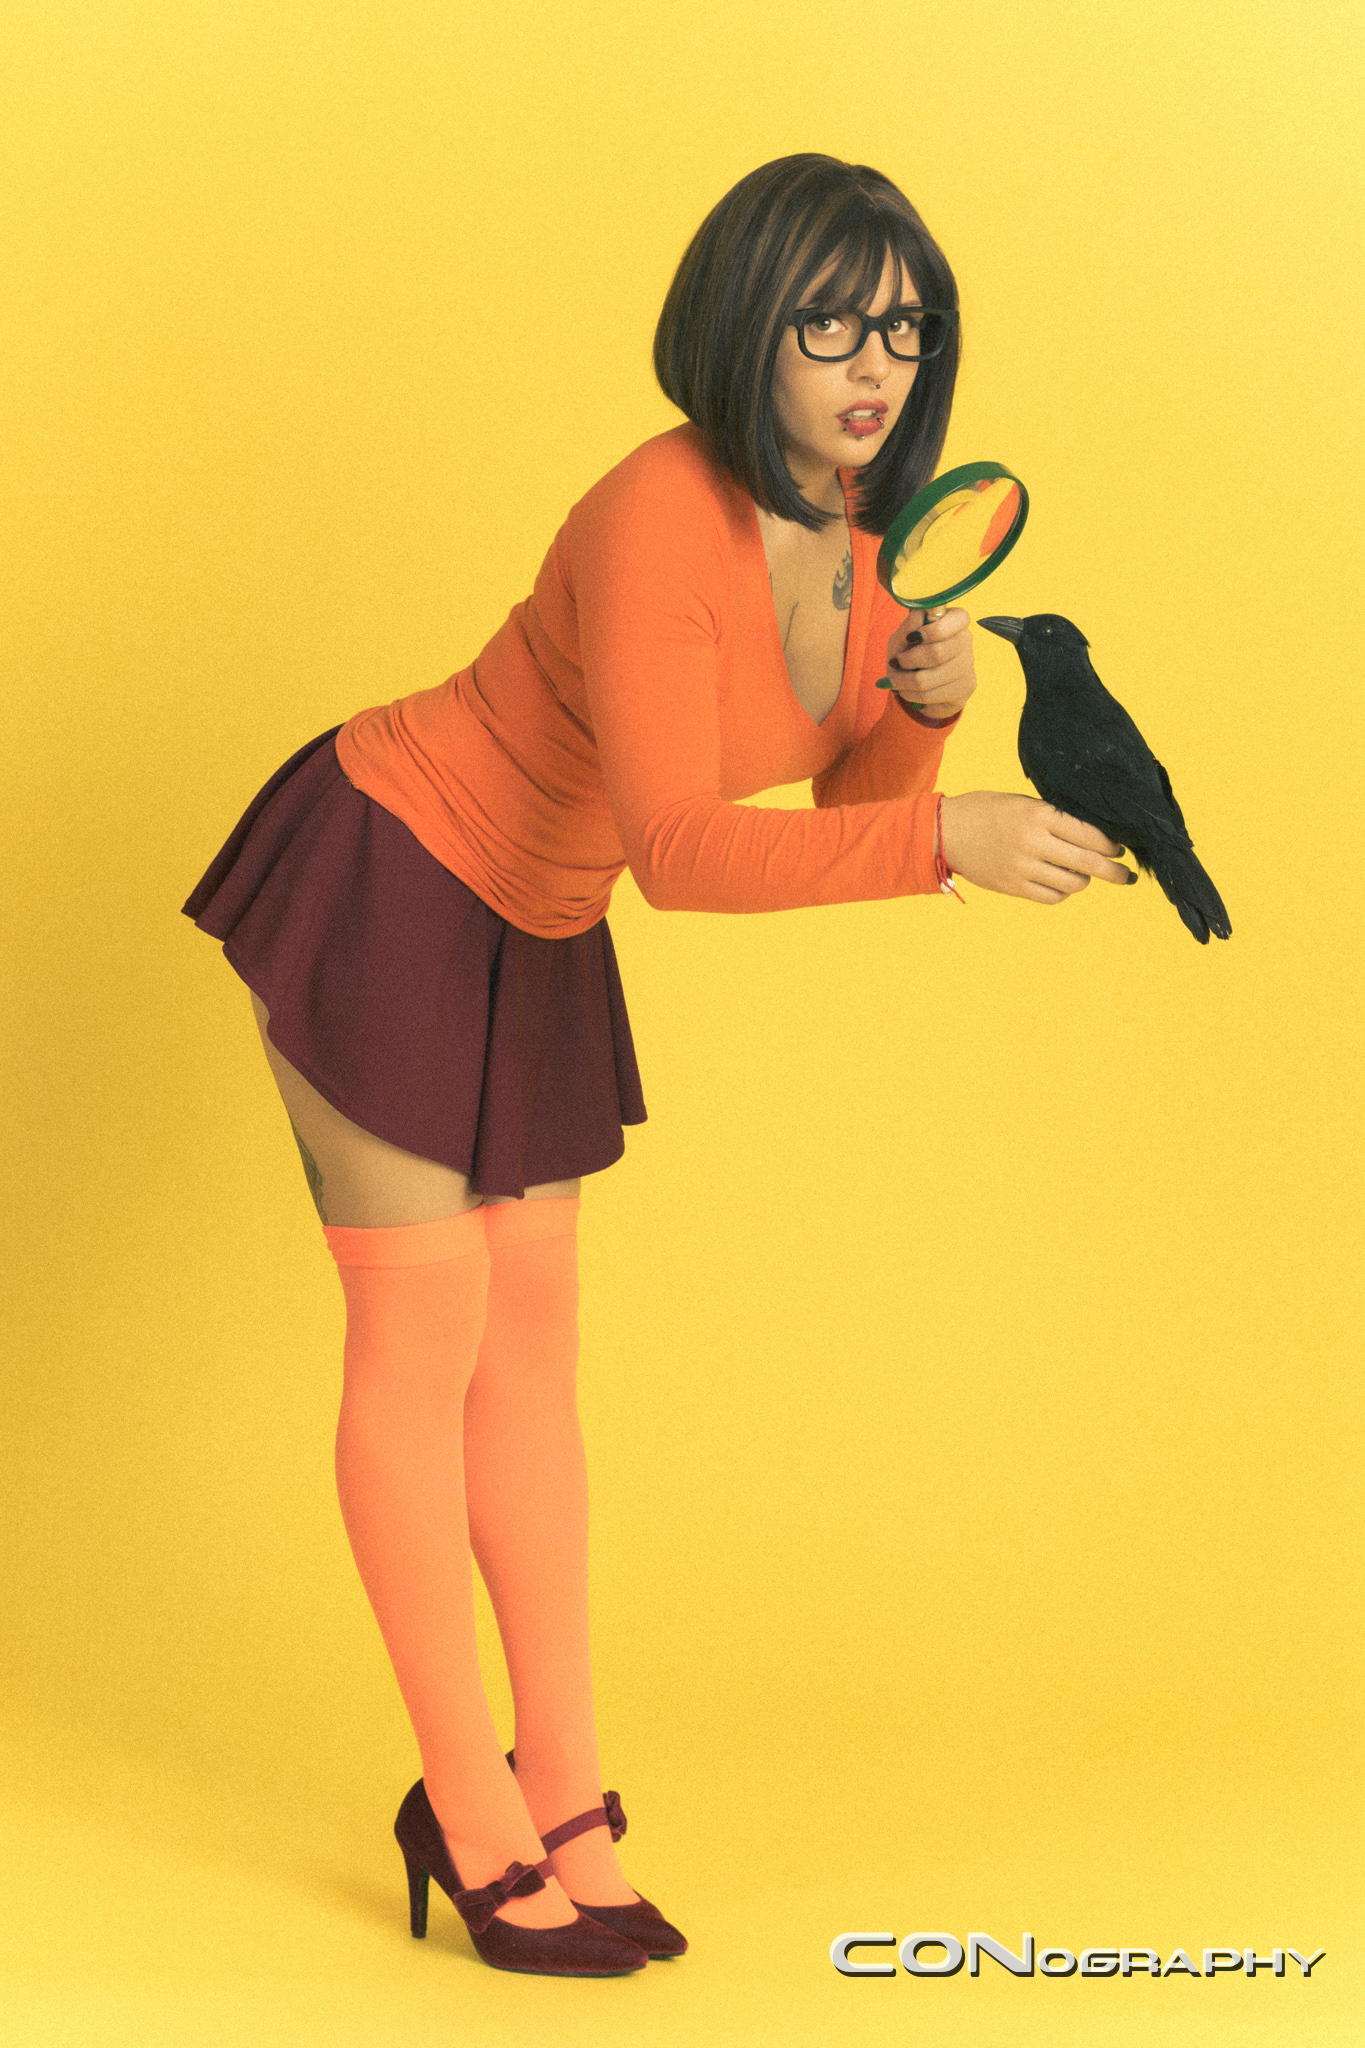 Sexy velma from scooby doo confirm